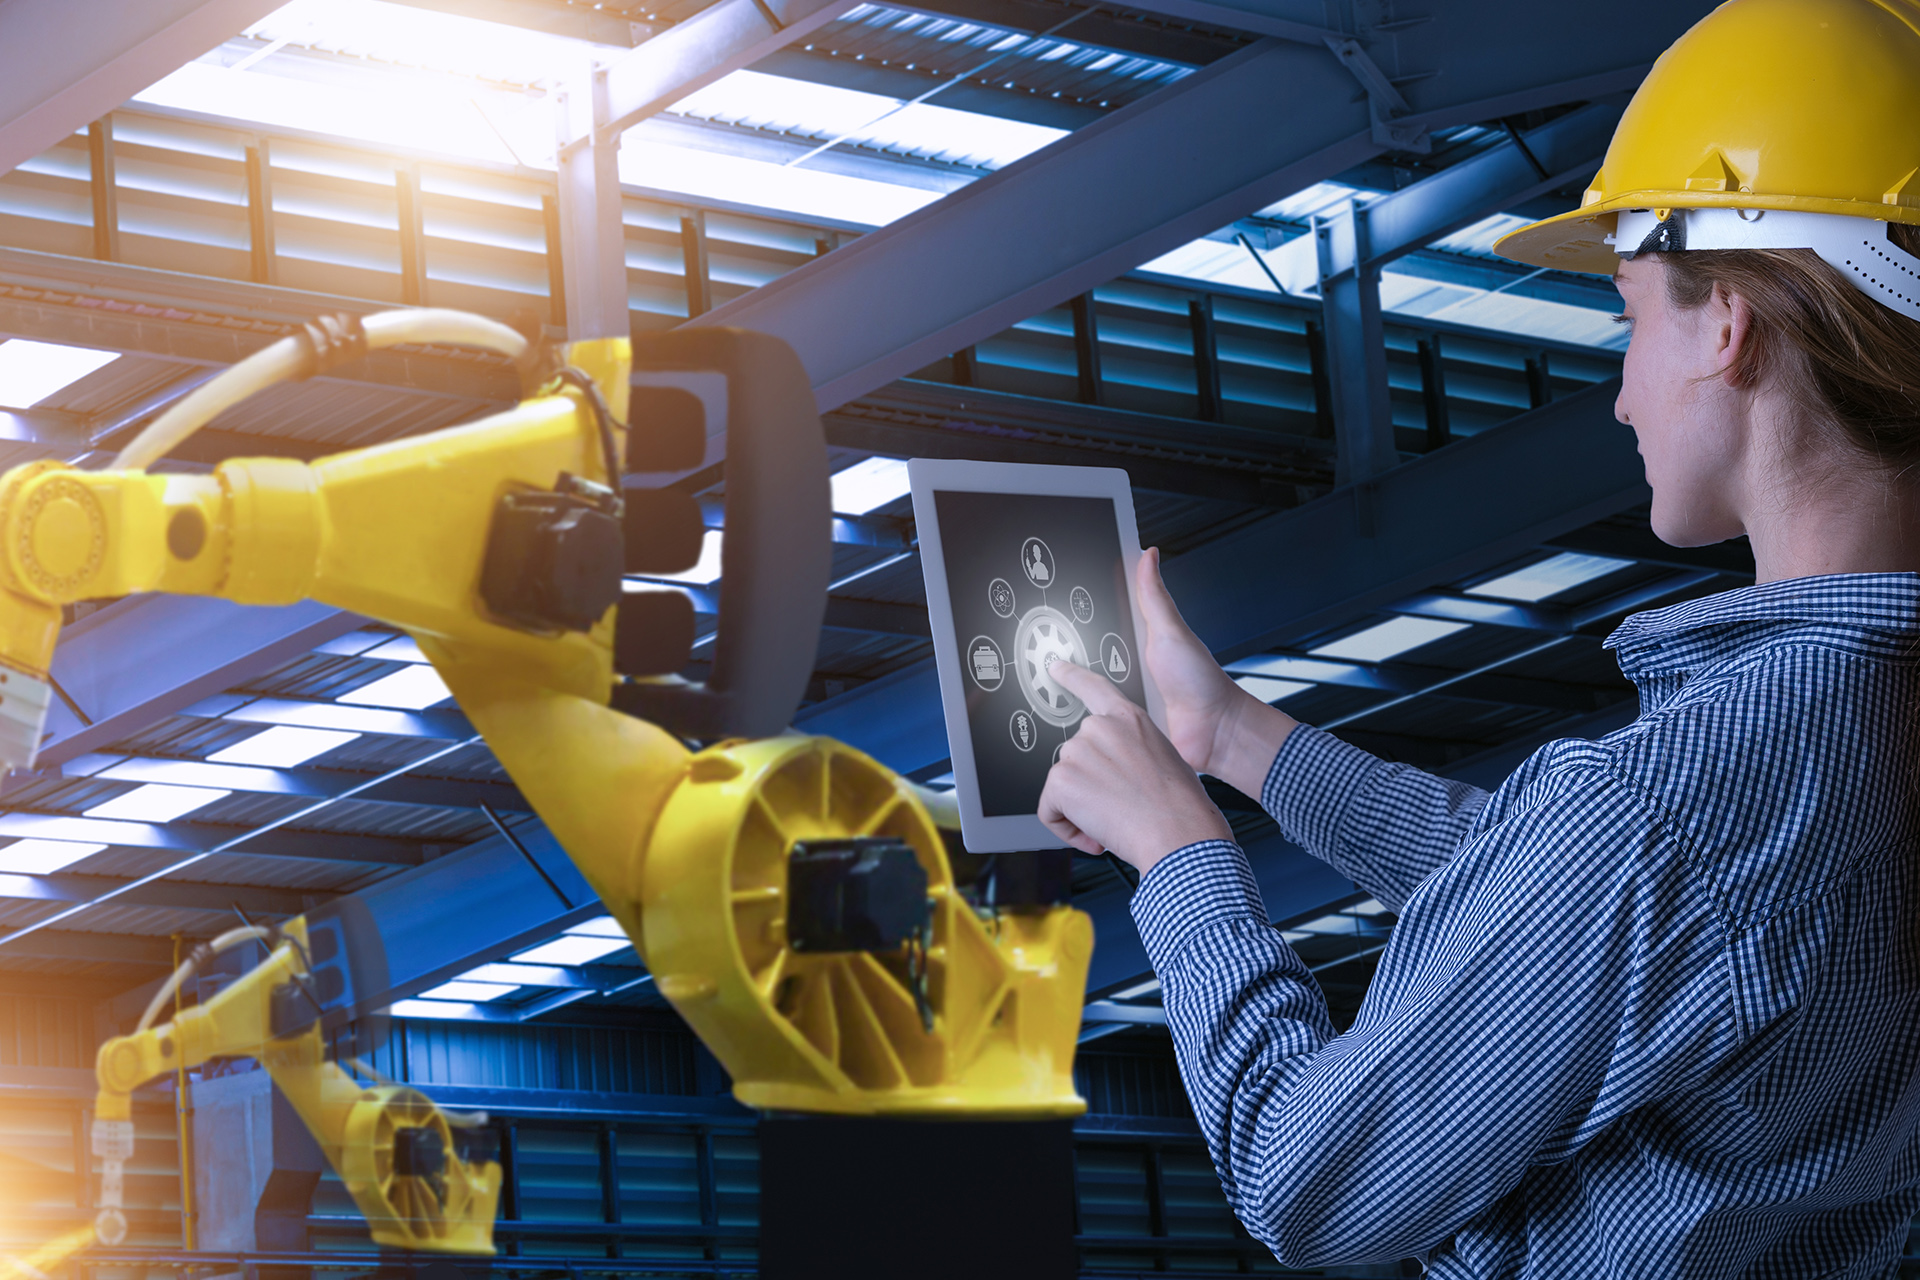 Lean manufacturing technology